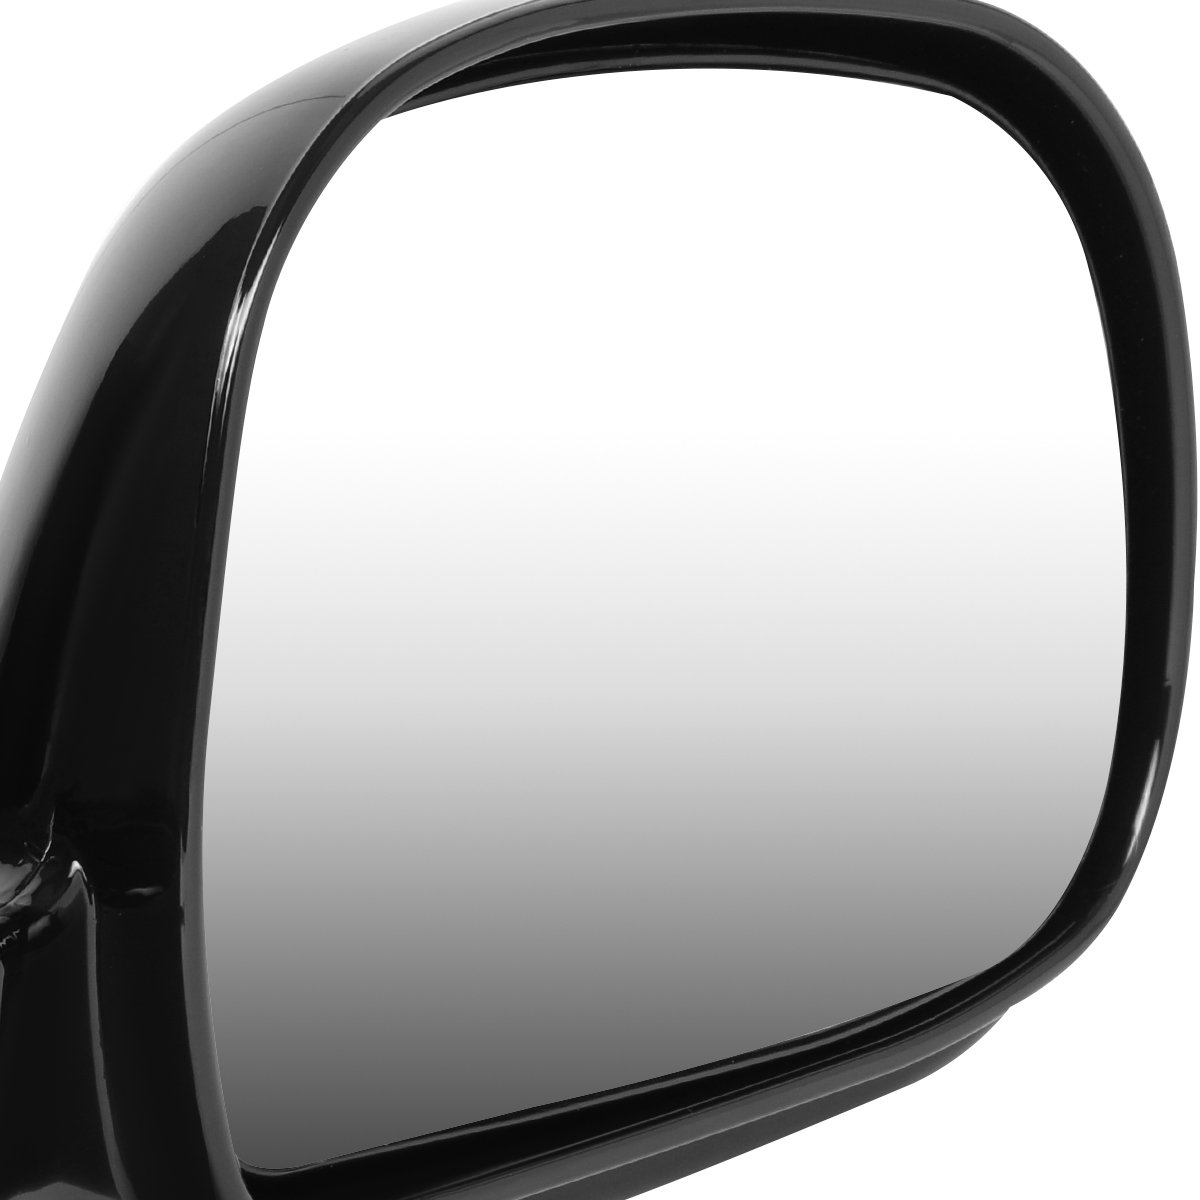 Right//Passenger For 94-97 Chevy Blazer S10//GMC Jimmy Sonoma OE Style Manual Adjustment Side View Mirror